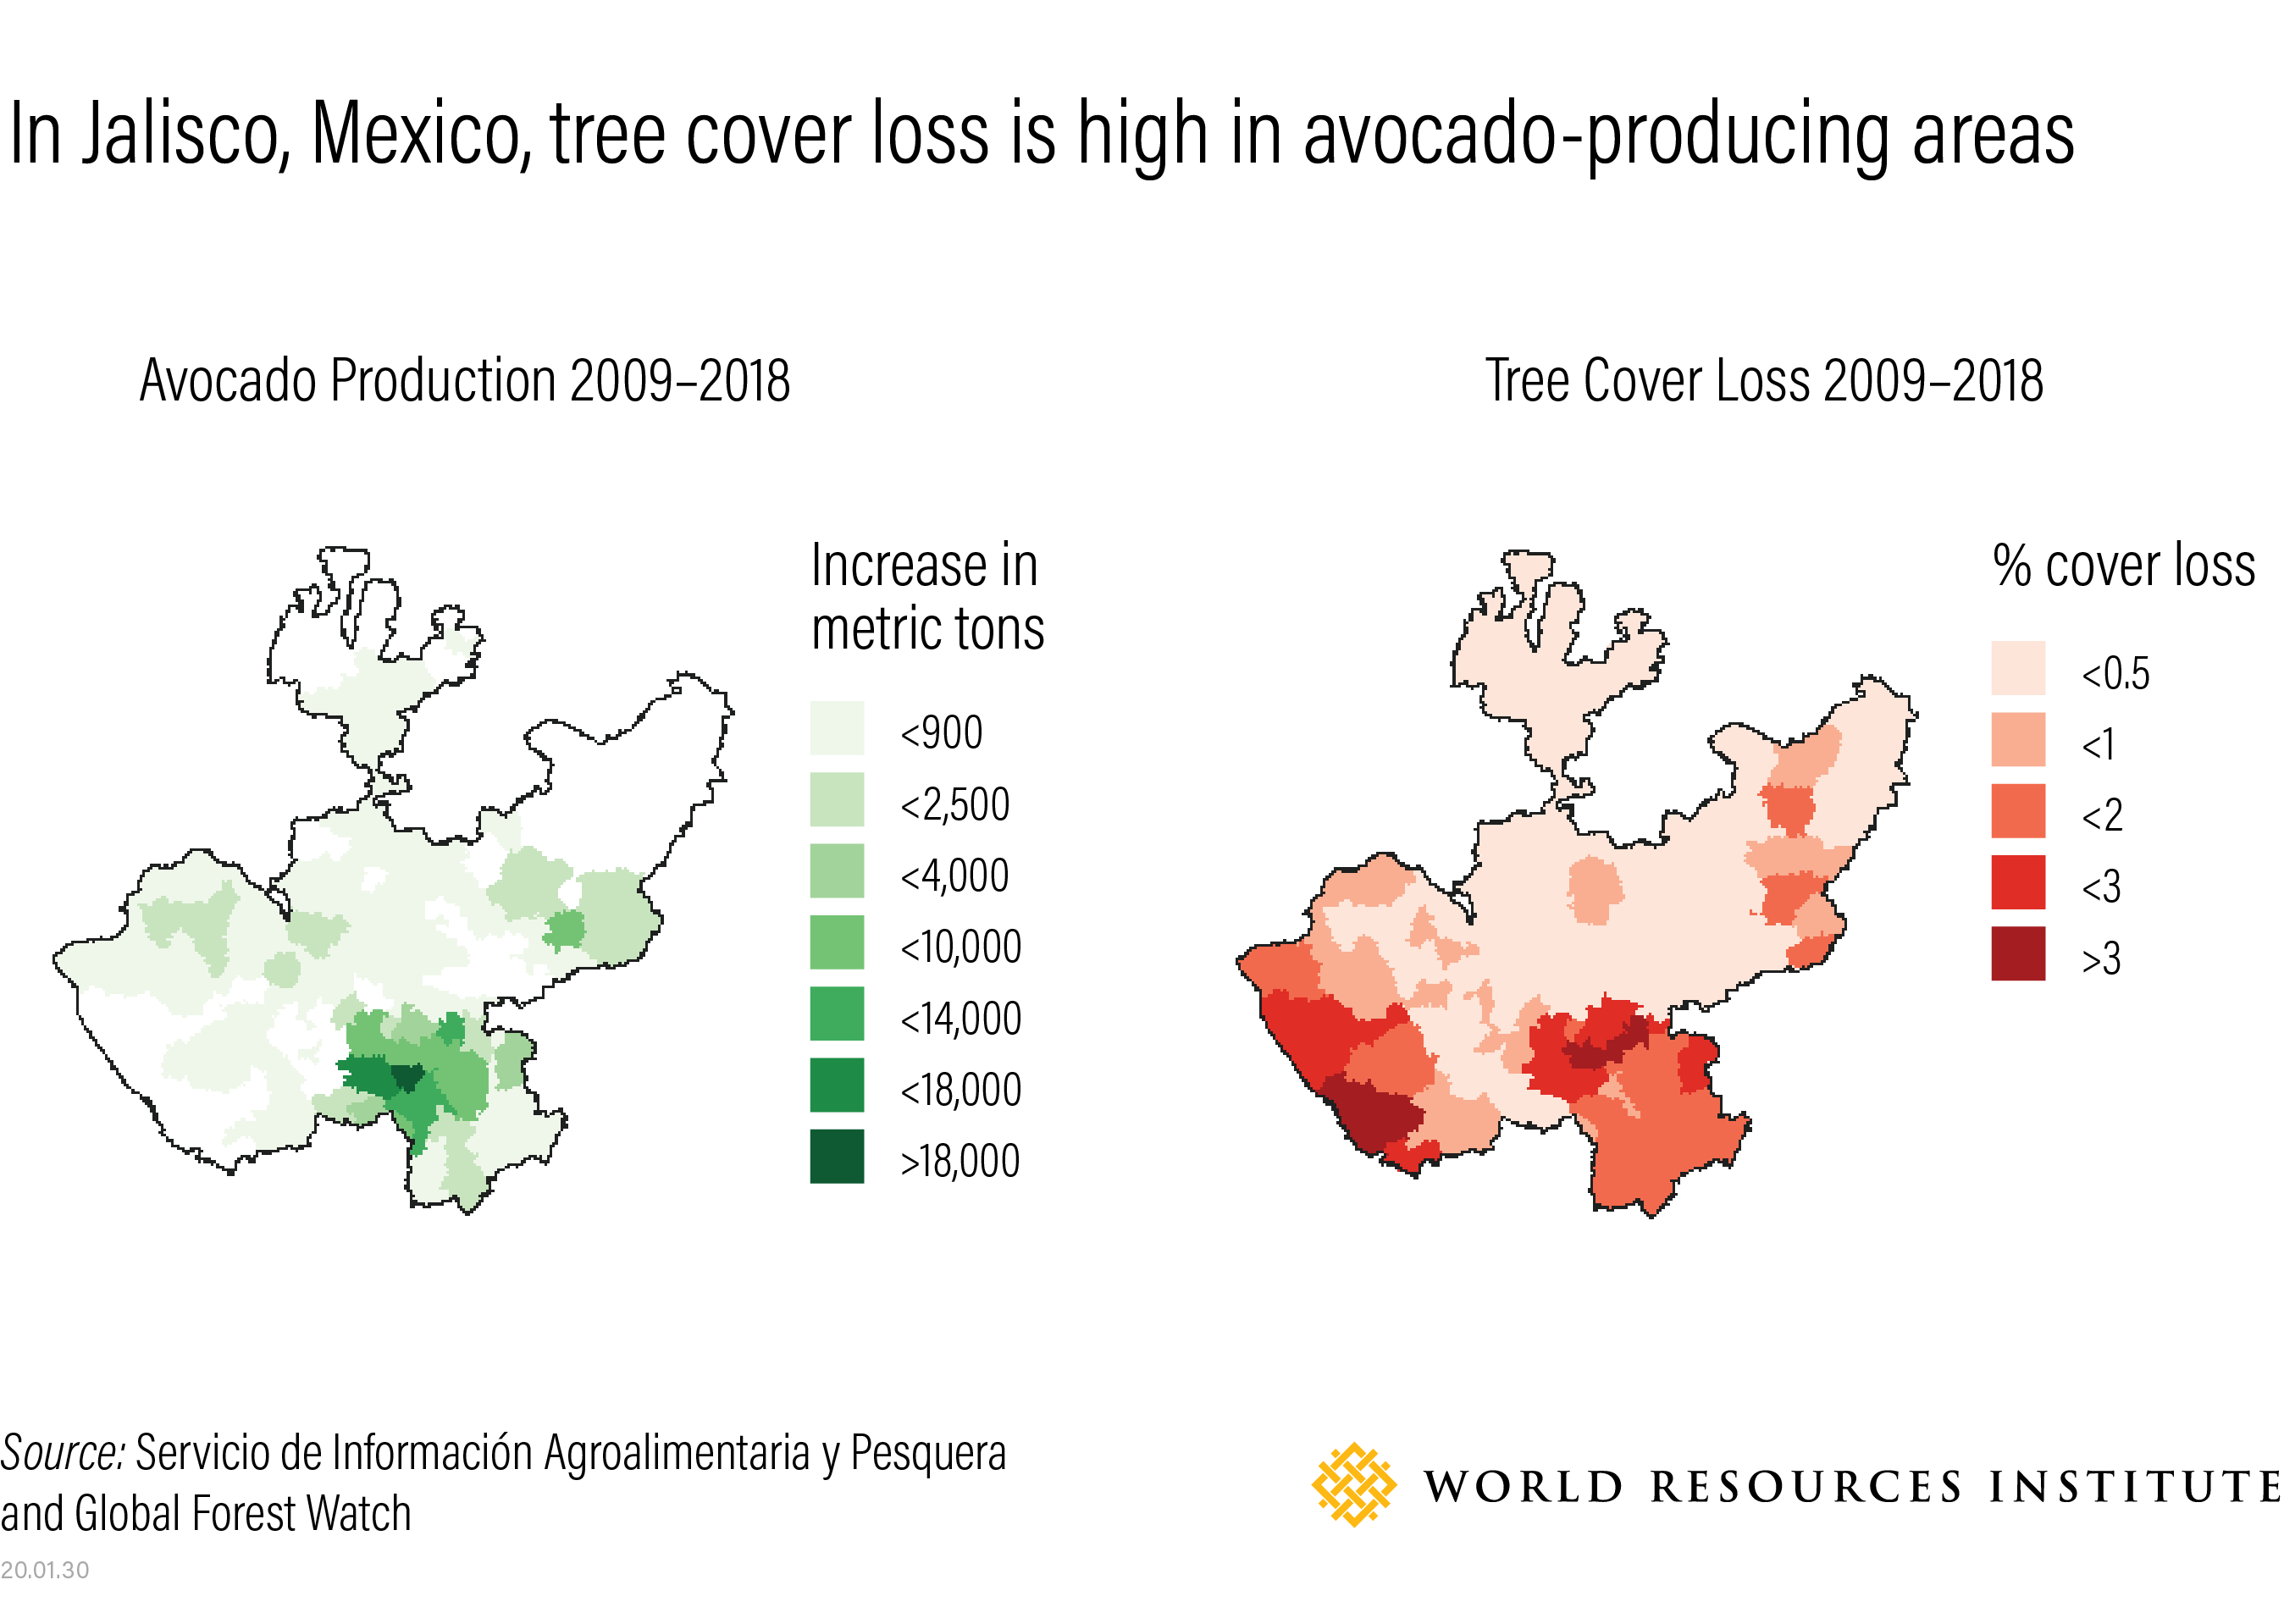 Tree cover loss and avocado production